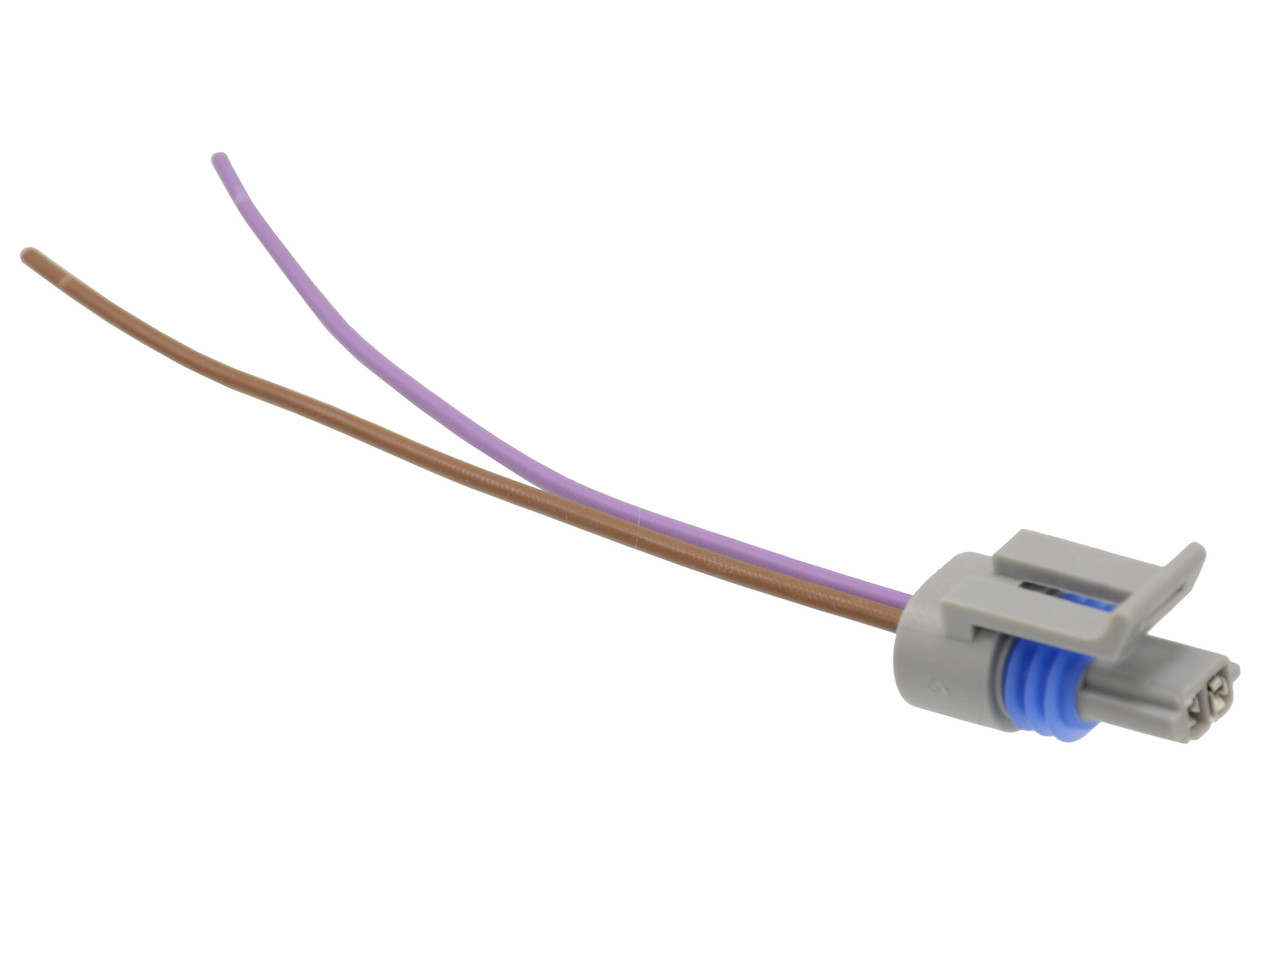 hight resolution of iat intake air temperature sensor wiring harness connector pigtail iat mat intake air temperature sensor wiring